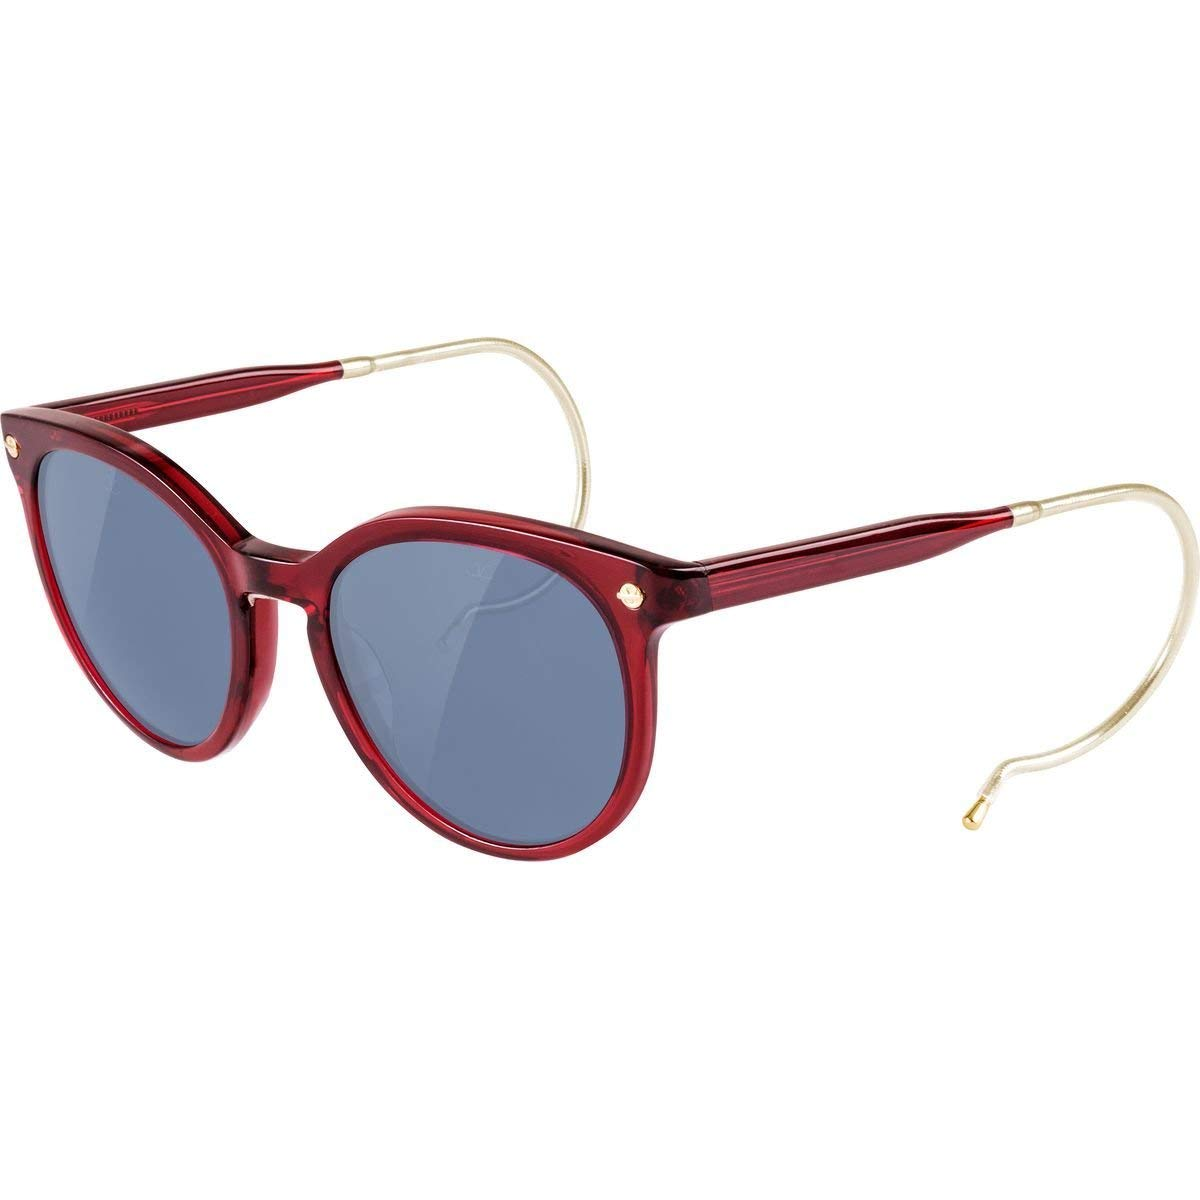 2702b1a3f4 Get Quotations · Vuarnet VL 1511 Sunglasses - Polarized Bordeaux  Polar  Blue